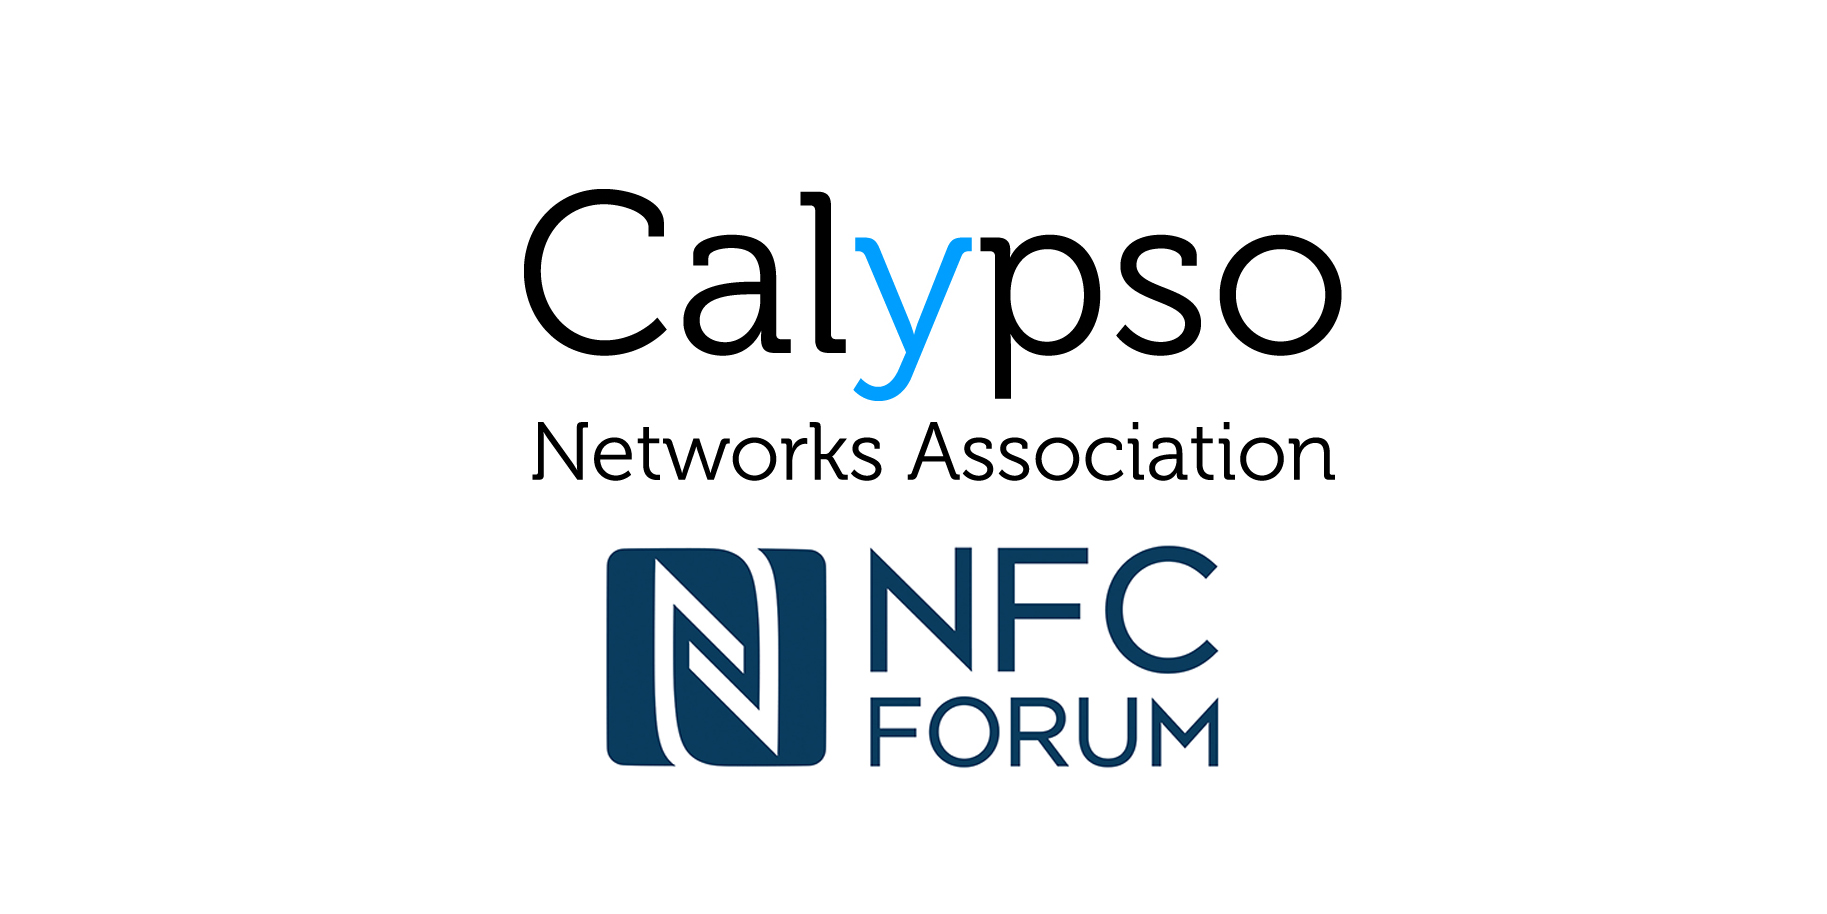 Calypso Networks Association and NFC Forum Announce Collaboration